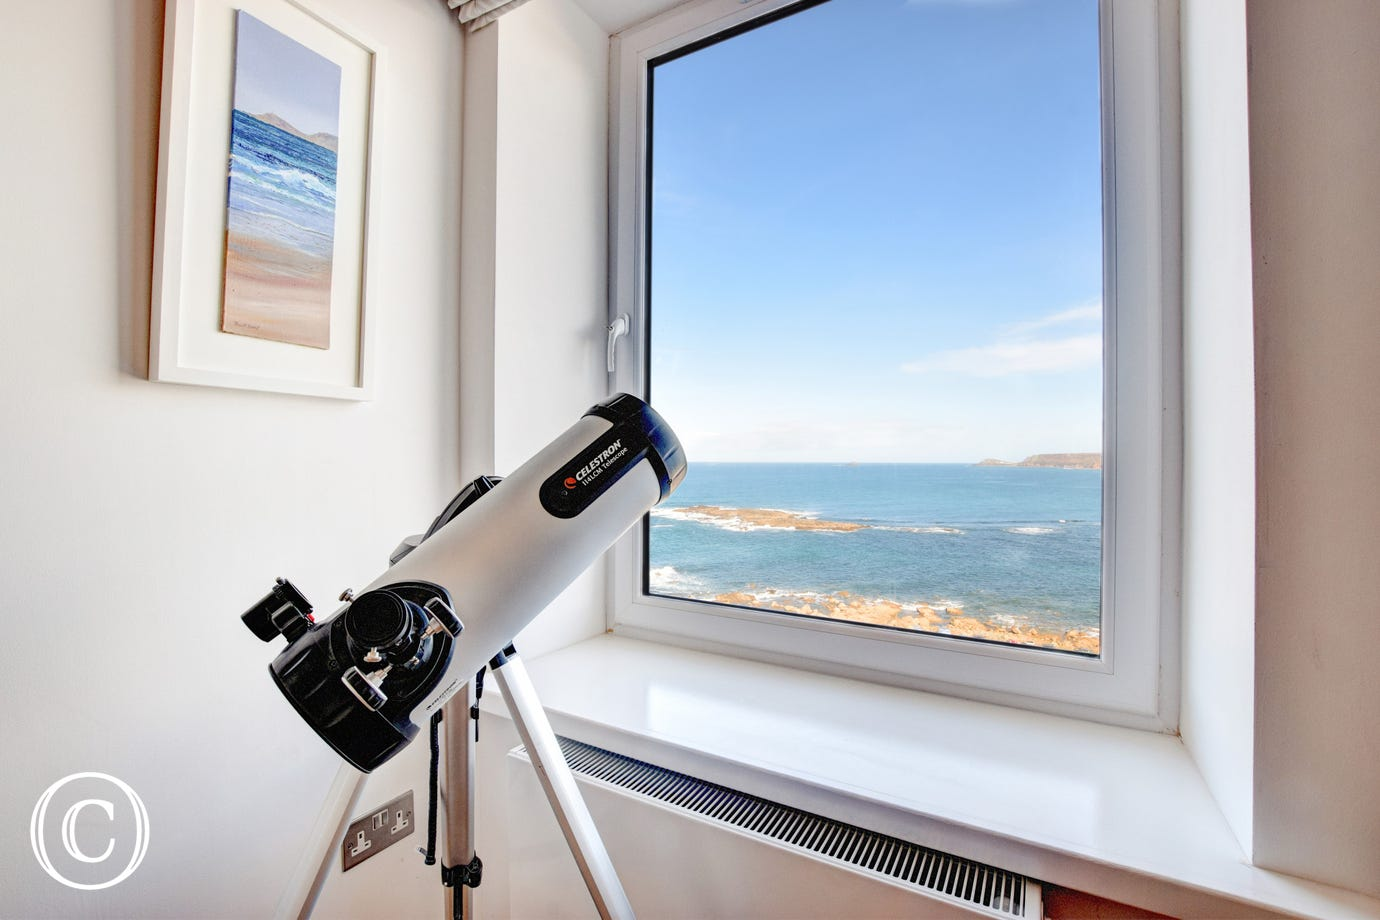 Telescope great for starry nights at The Look Out